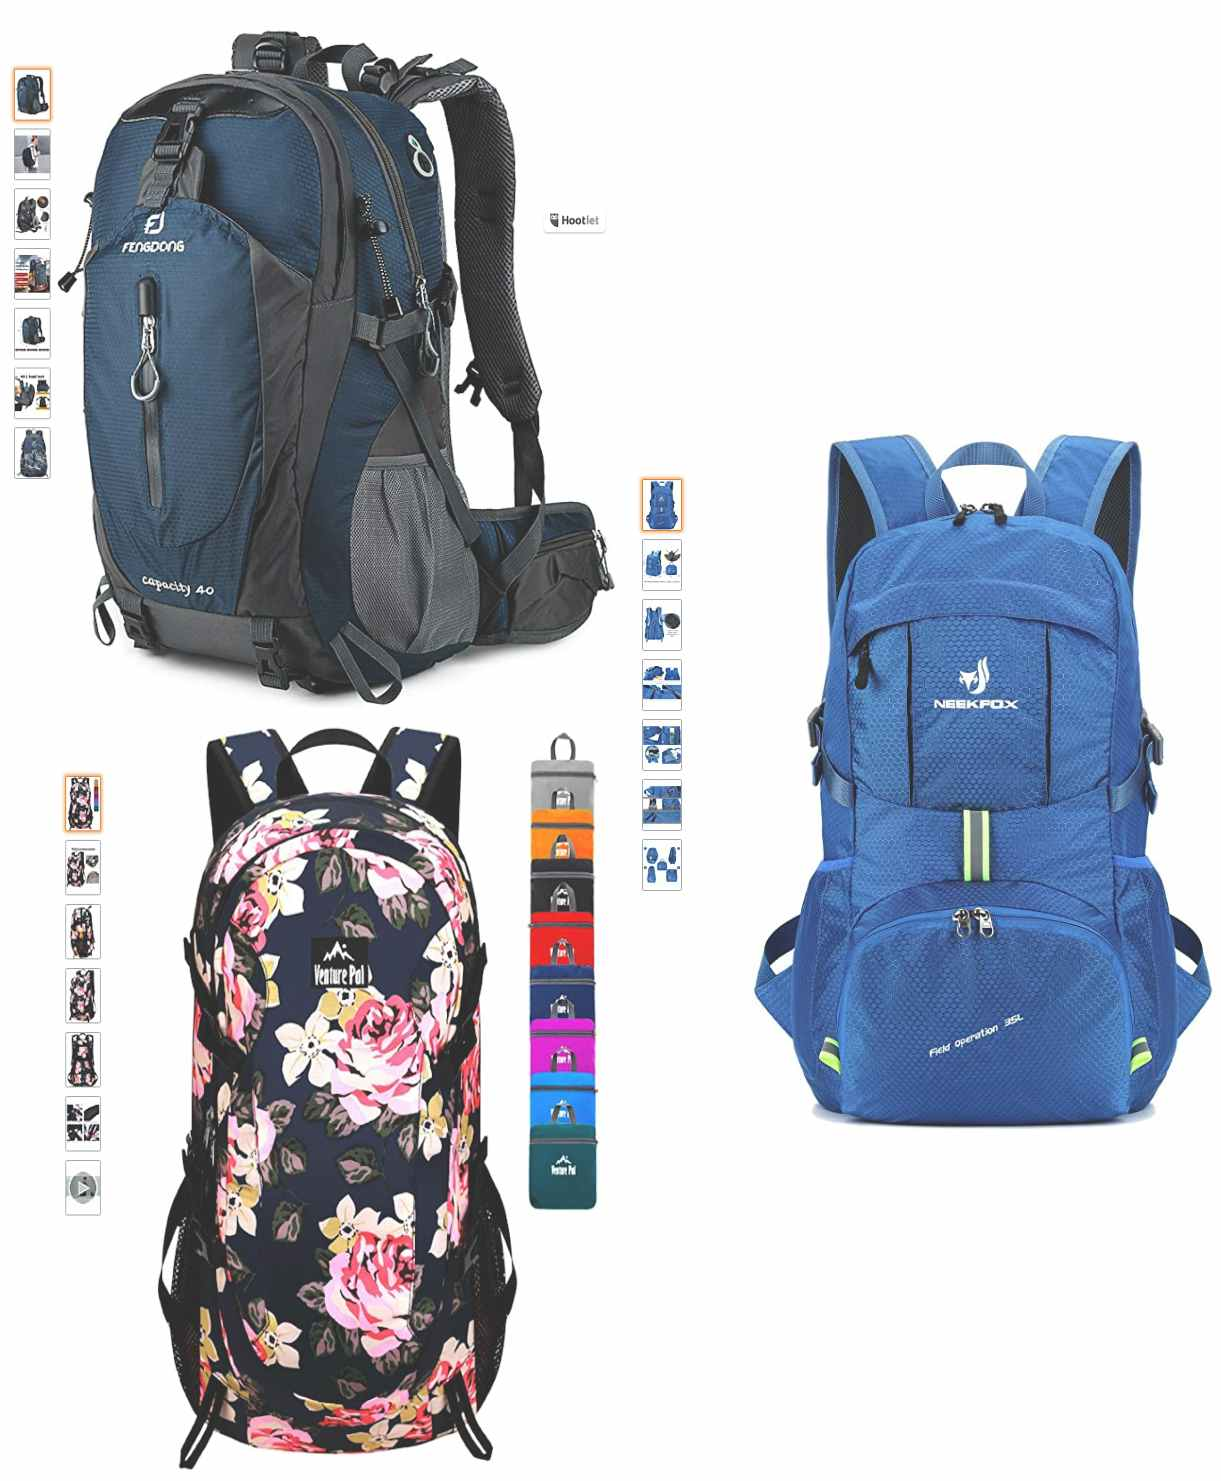 Backpacks on Amazon 2021